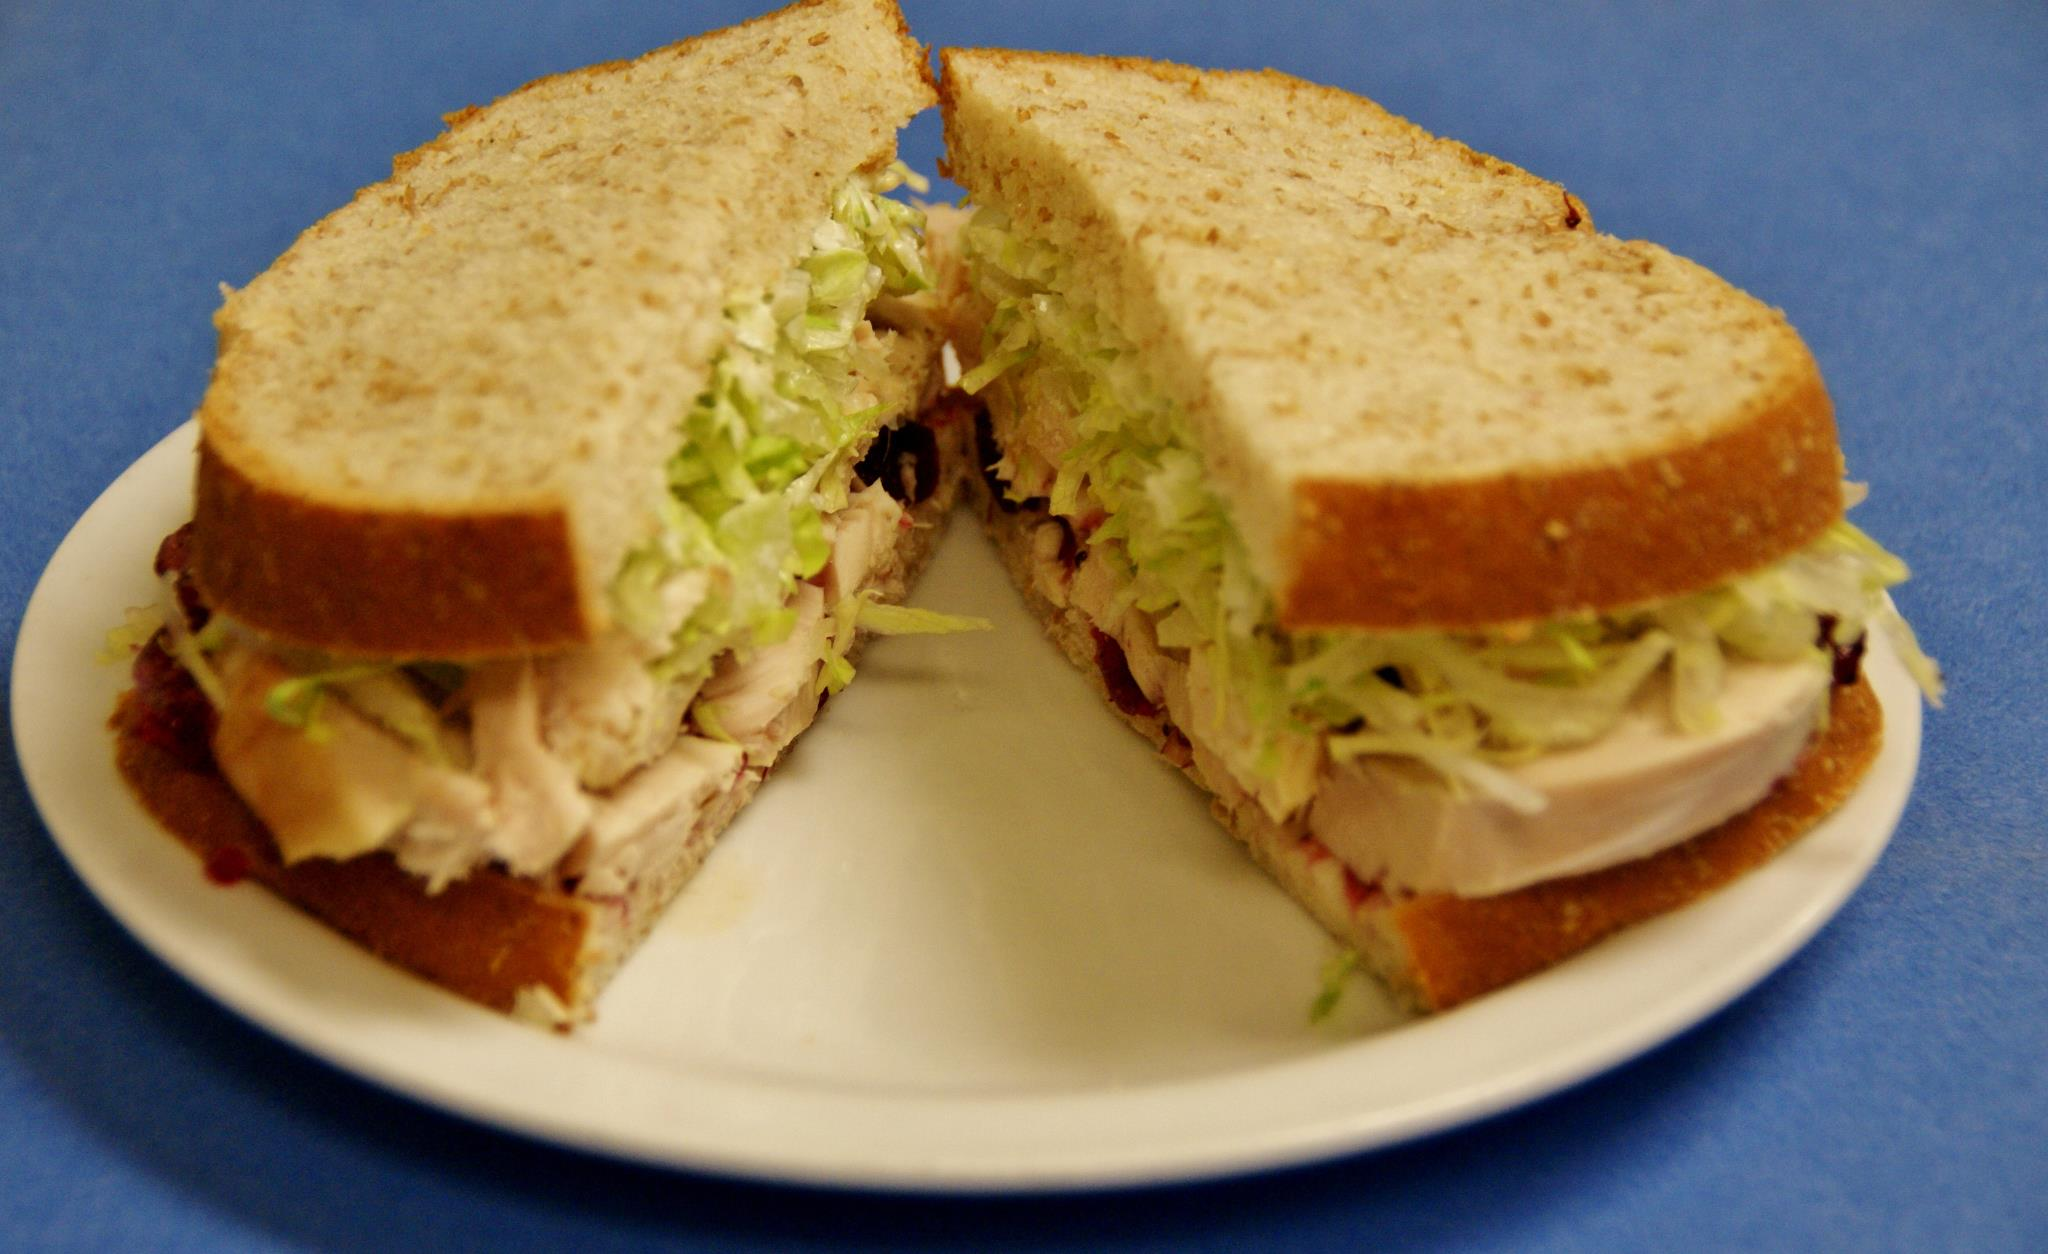 The famous turkey sandwich, made from a fresh-roasted bird, at Bakeman's